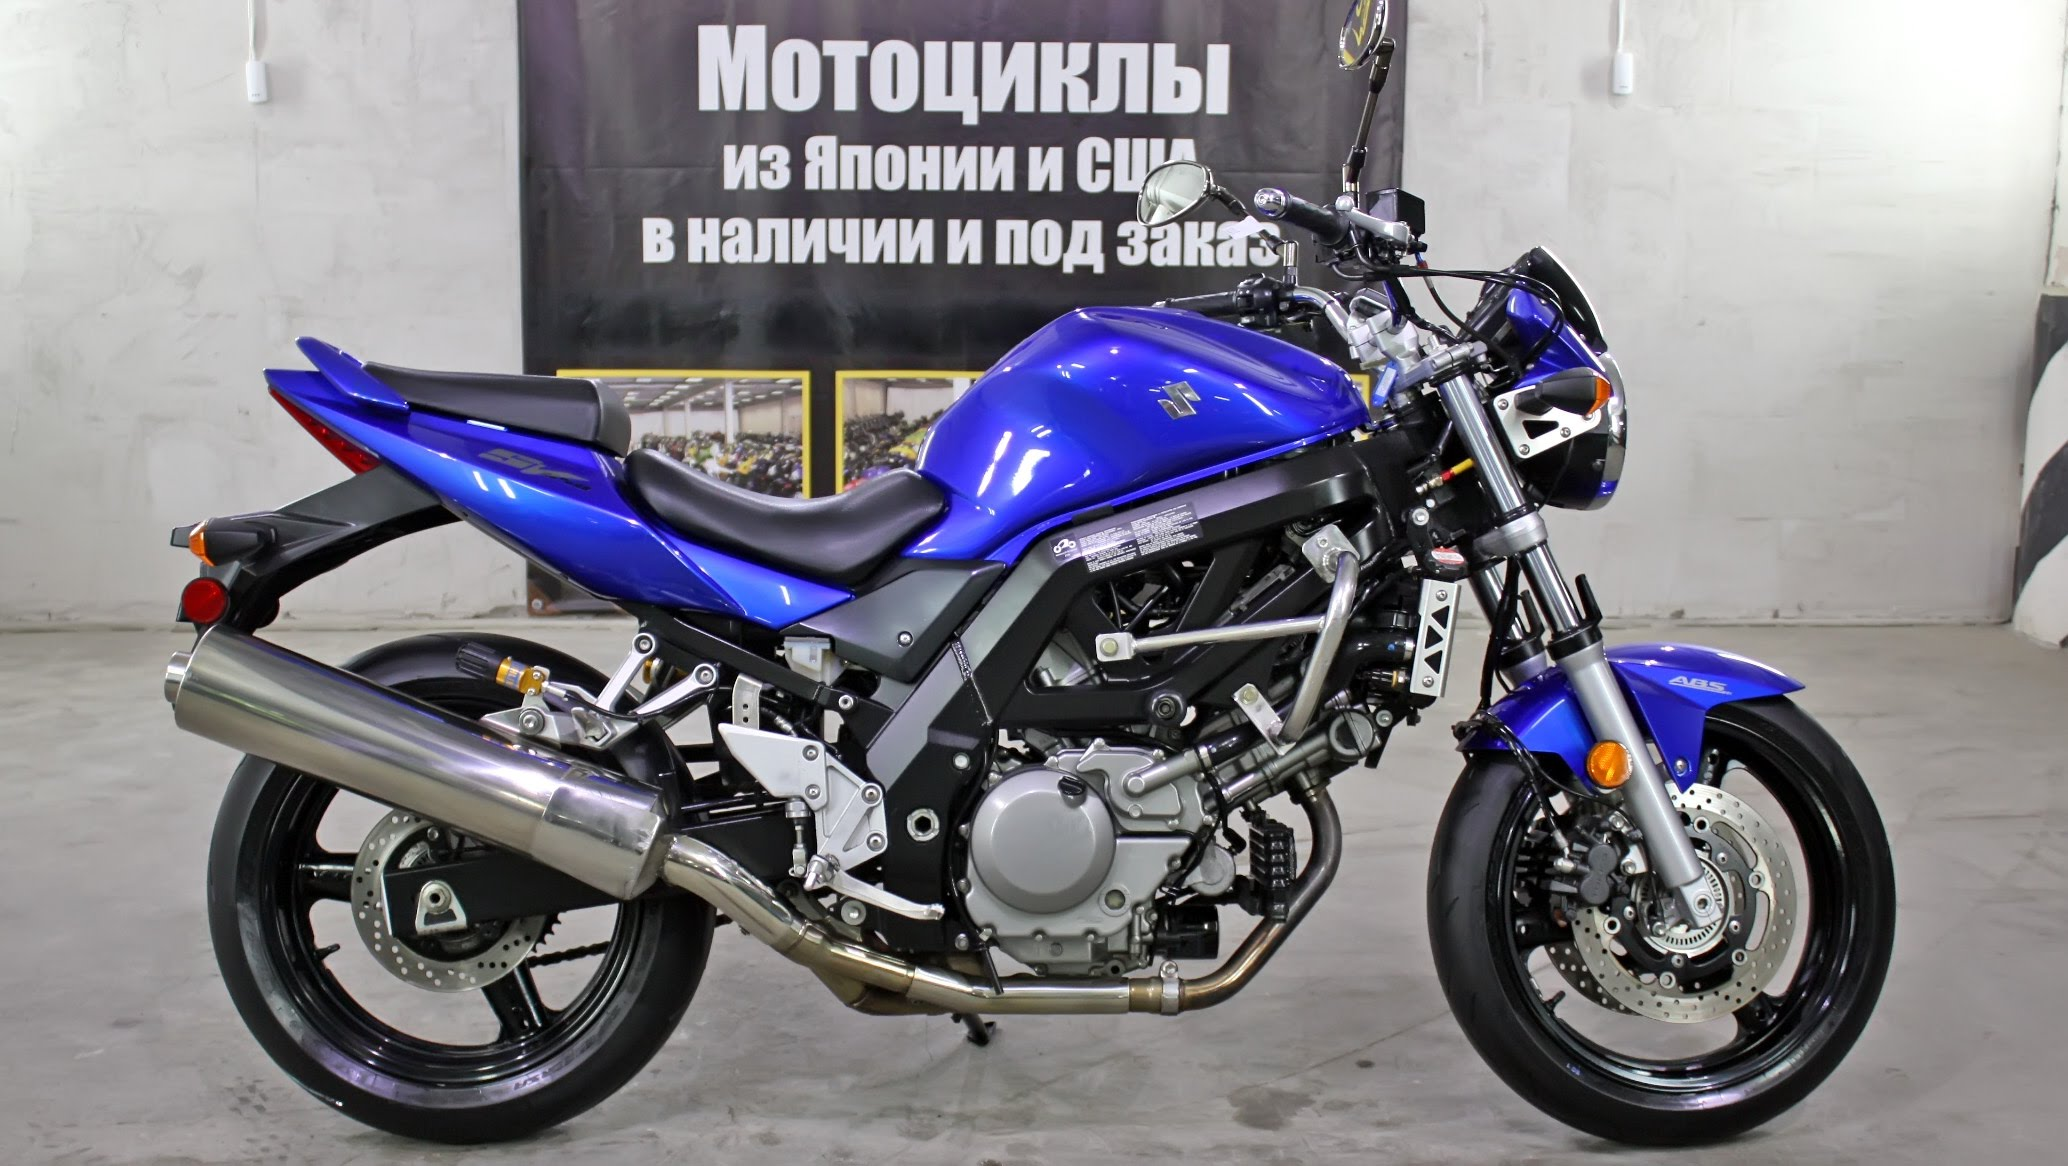 2008 suzuki sv 650 abs pics specs and information. Black Bedroom Furniture Sets. Home Design Ideas